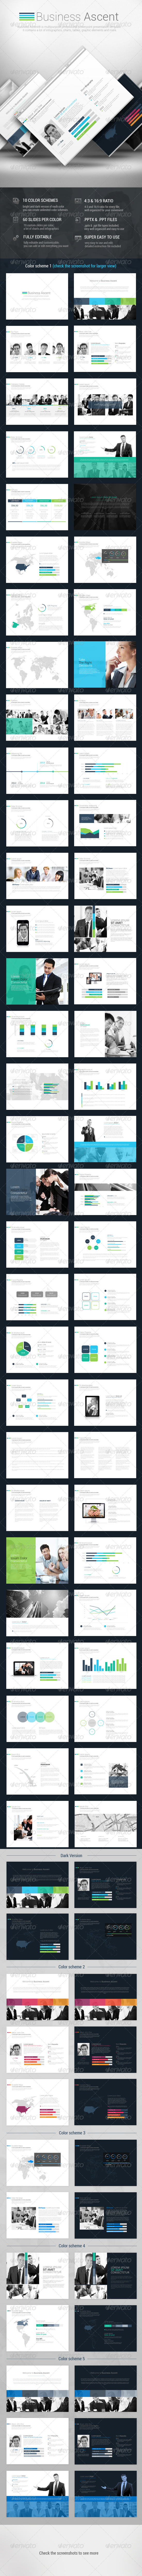 GraphicRiver Business Ascent Powerpoint Presentation Template 7954321